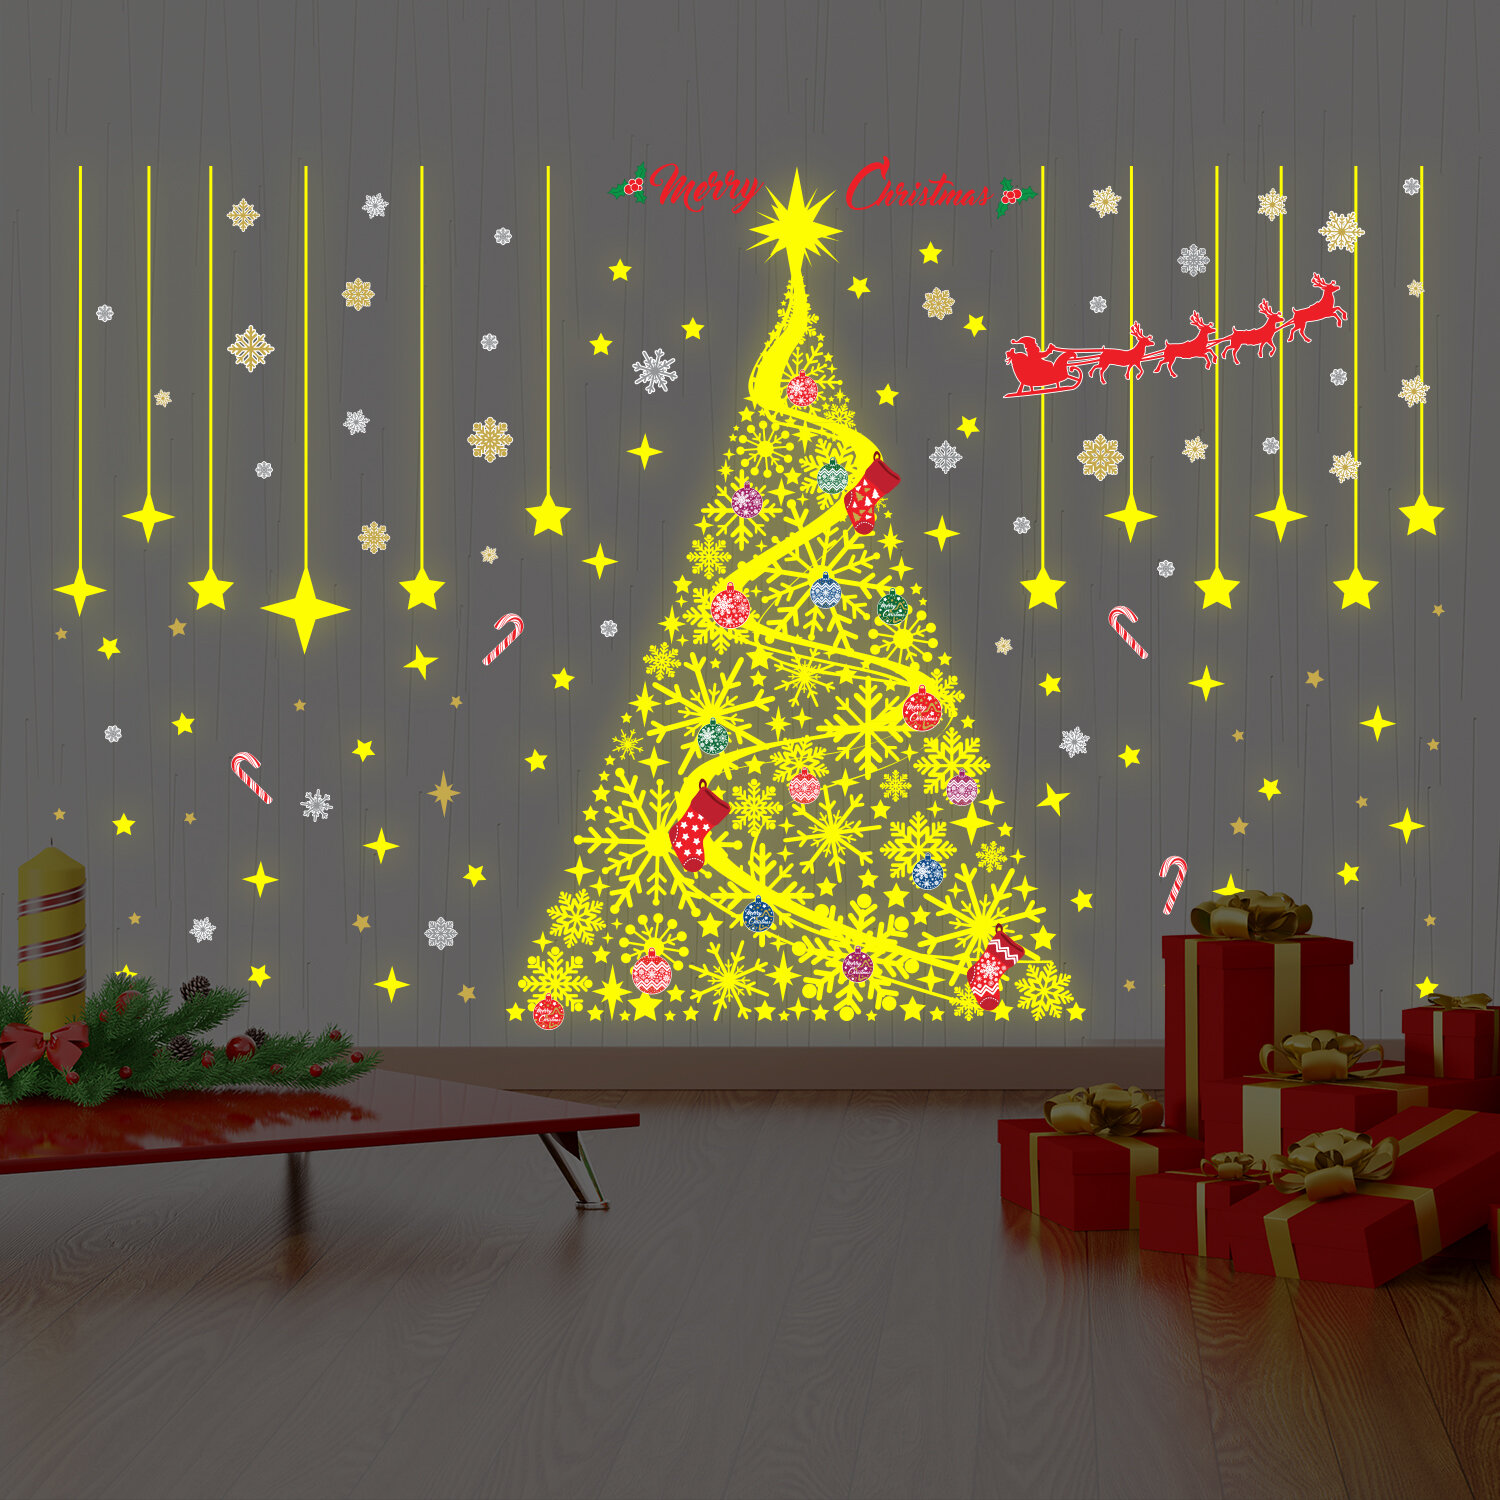 Modern Christmas Wall Sticker Decorations Illustration - The Wall ...